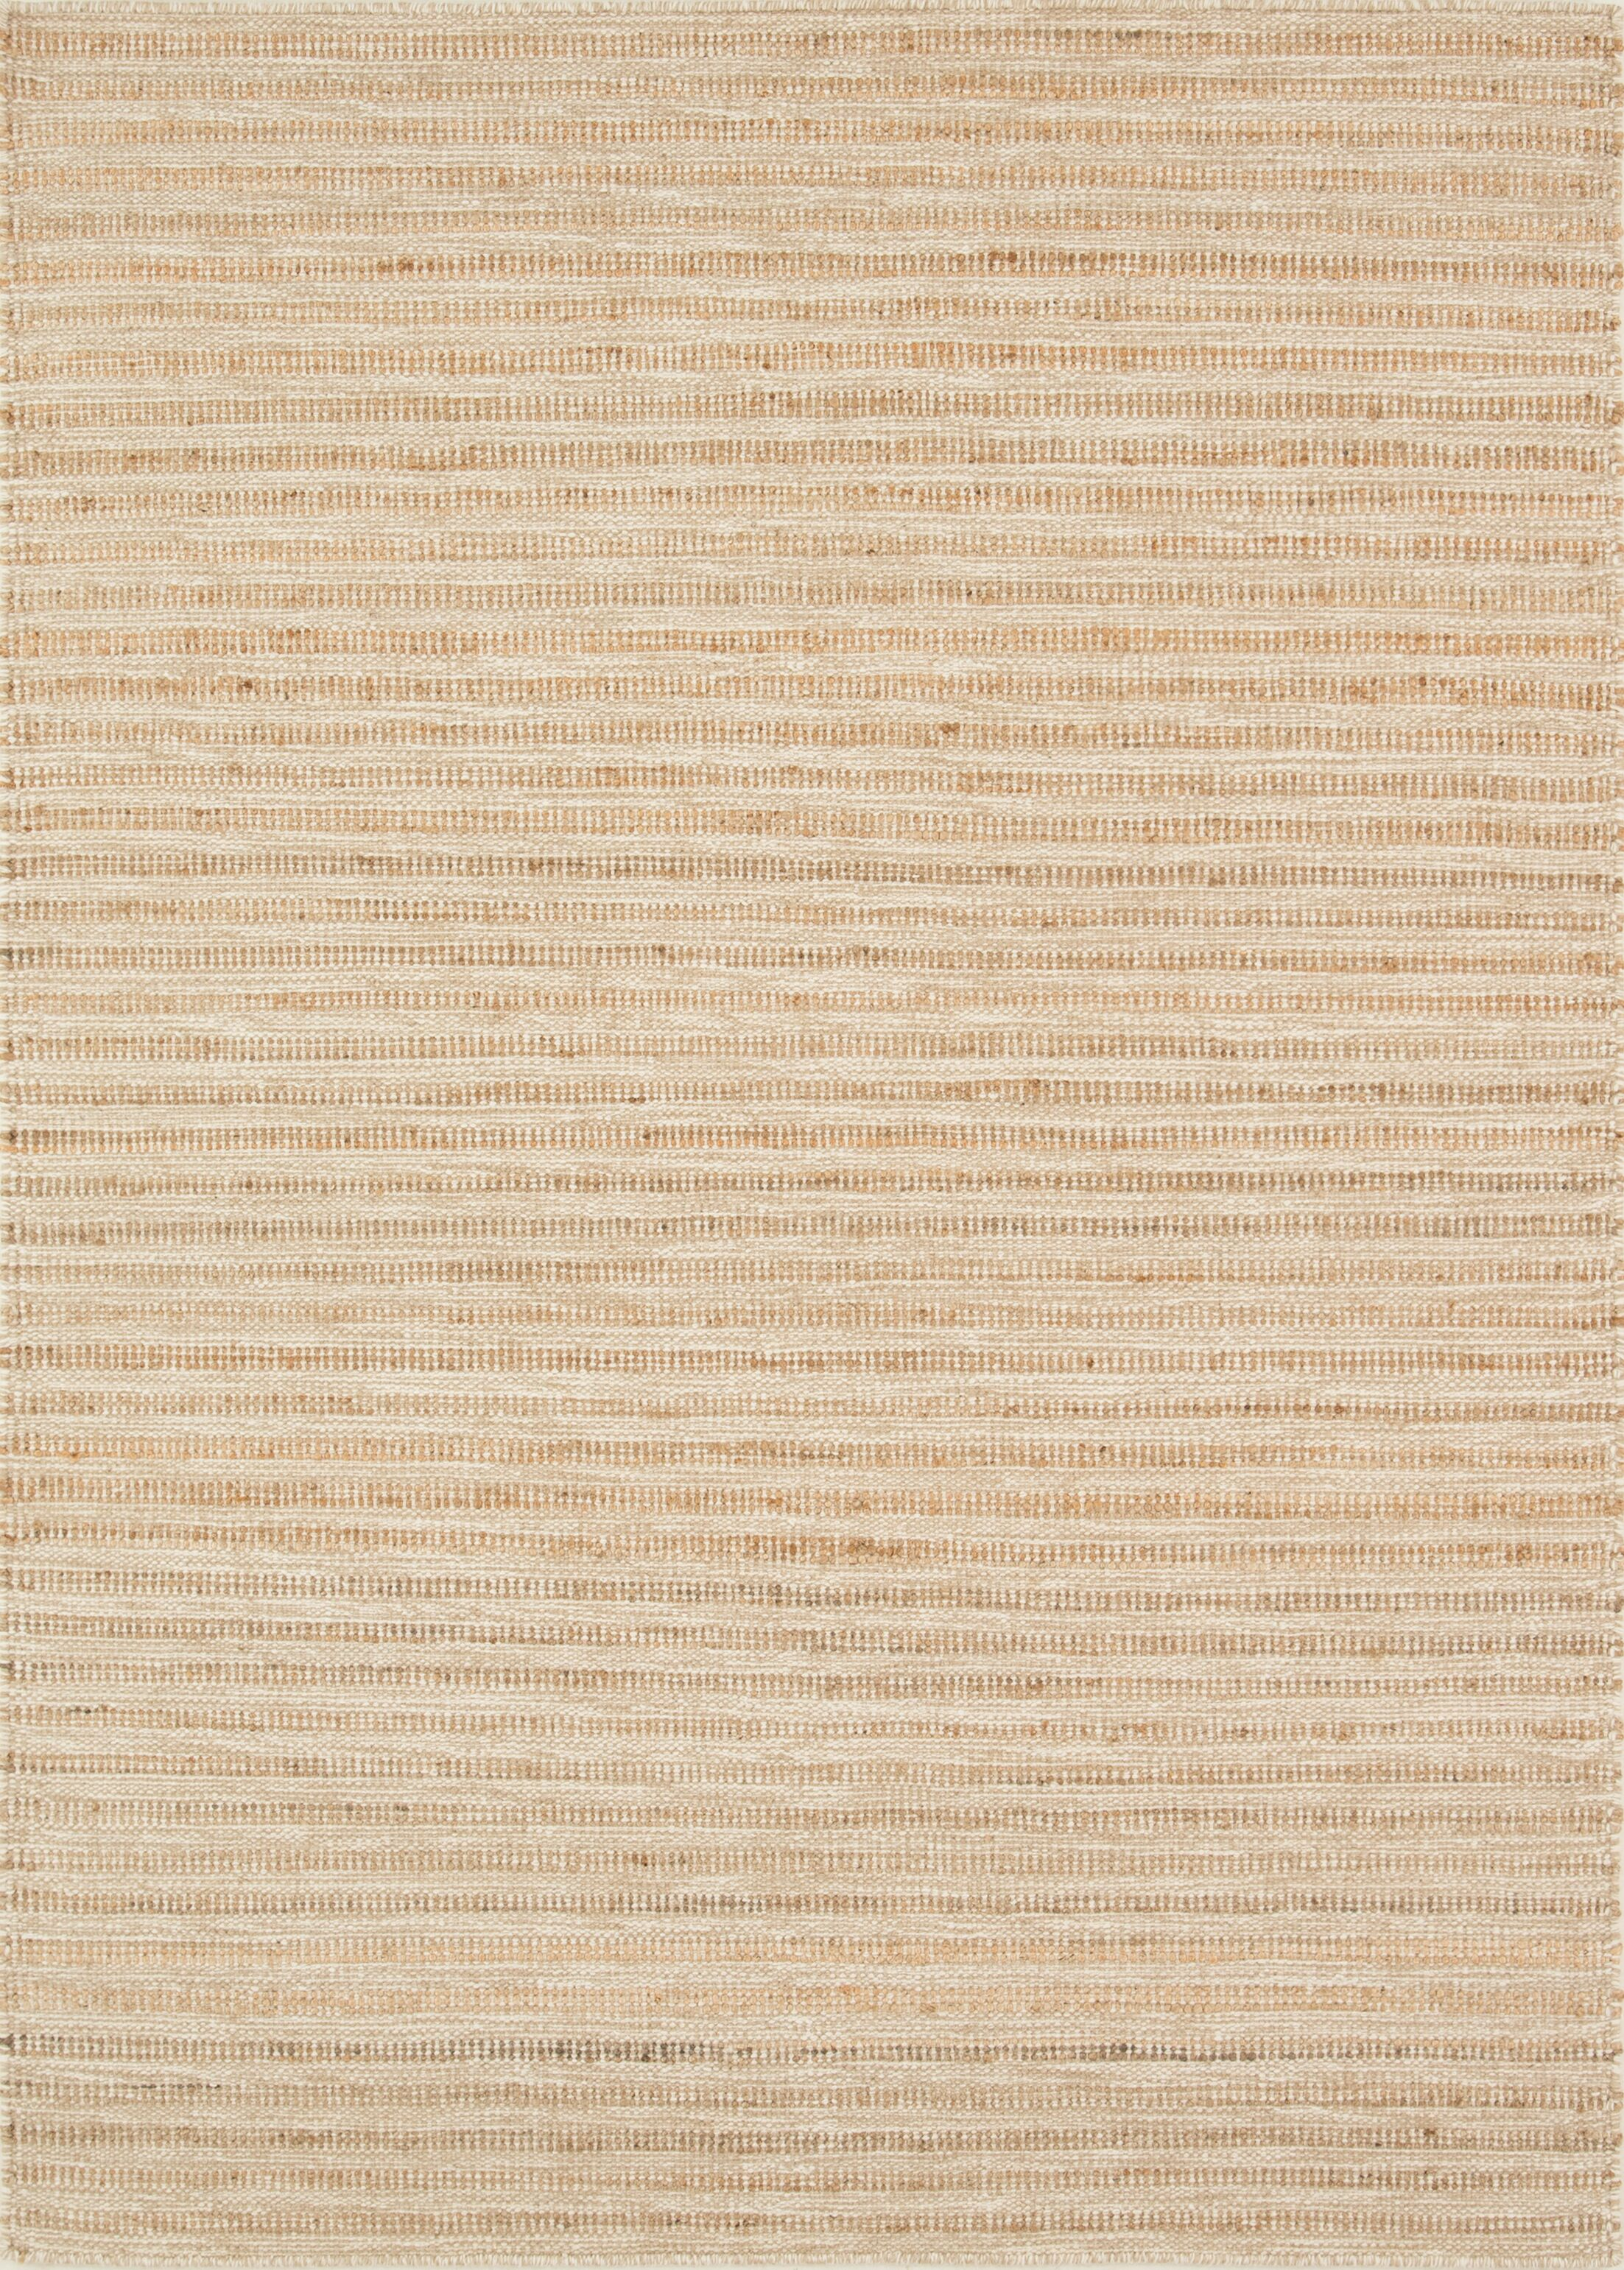 Nature's Mix Hand-Woven Flatweave Natural Area Rug Rug Size: 5' x 7'6